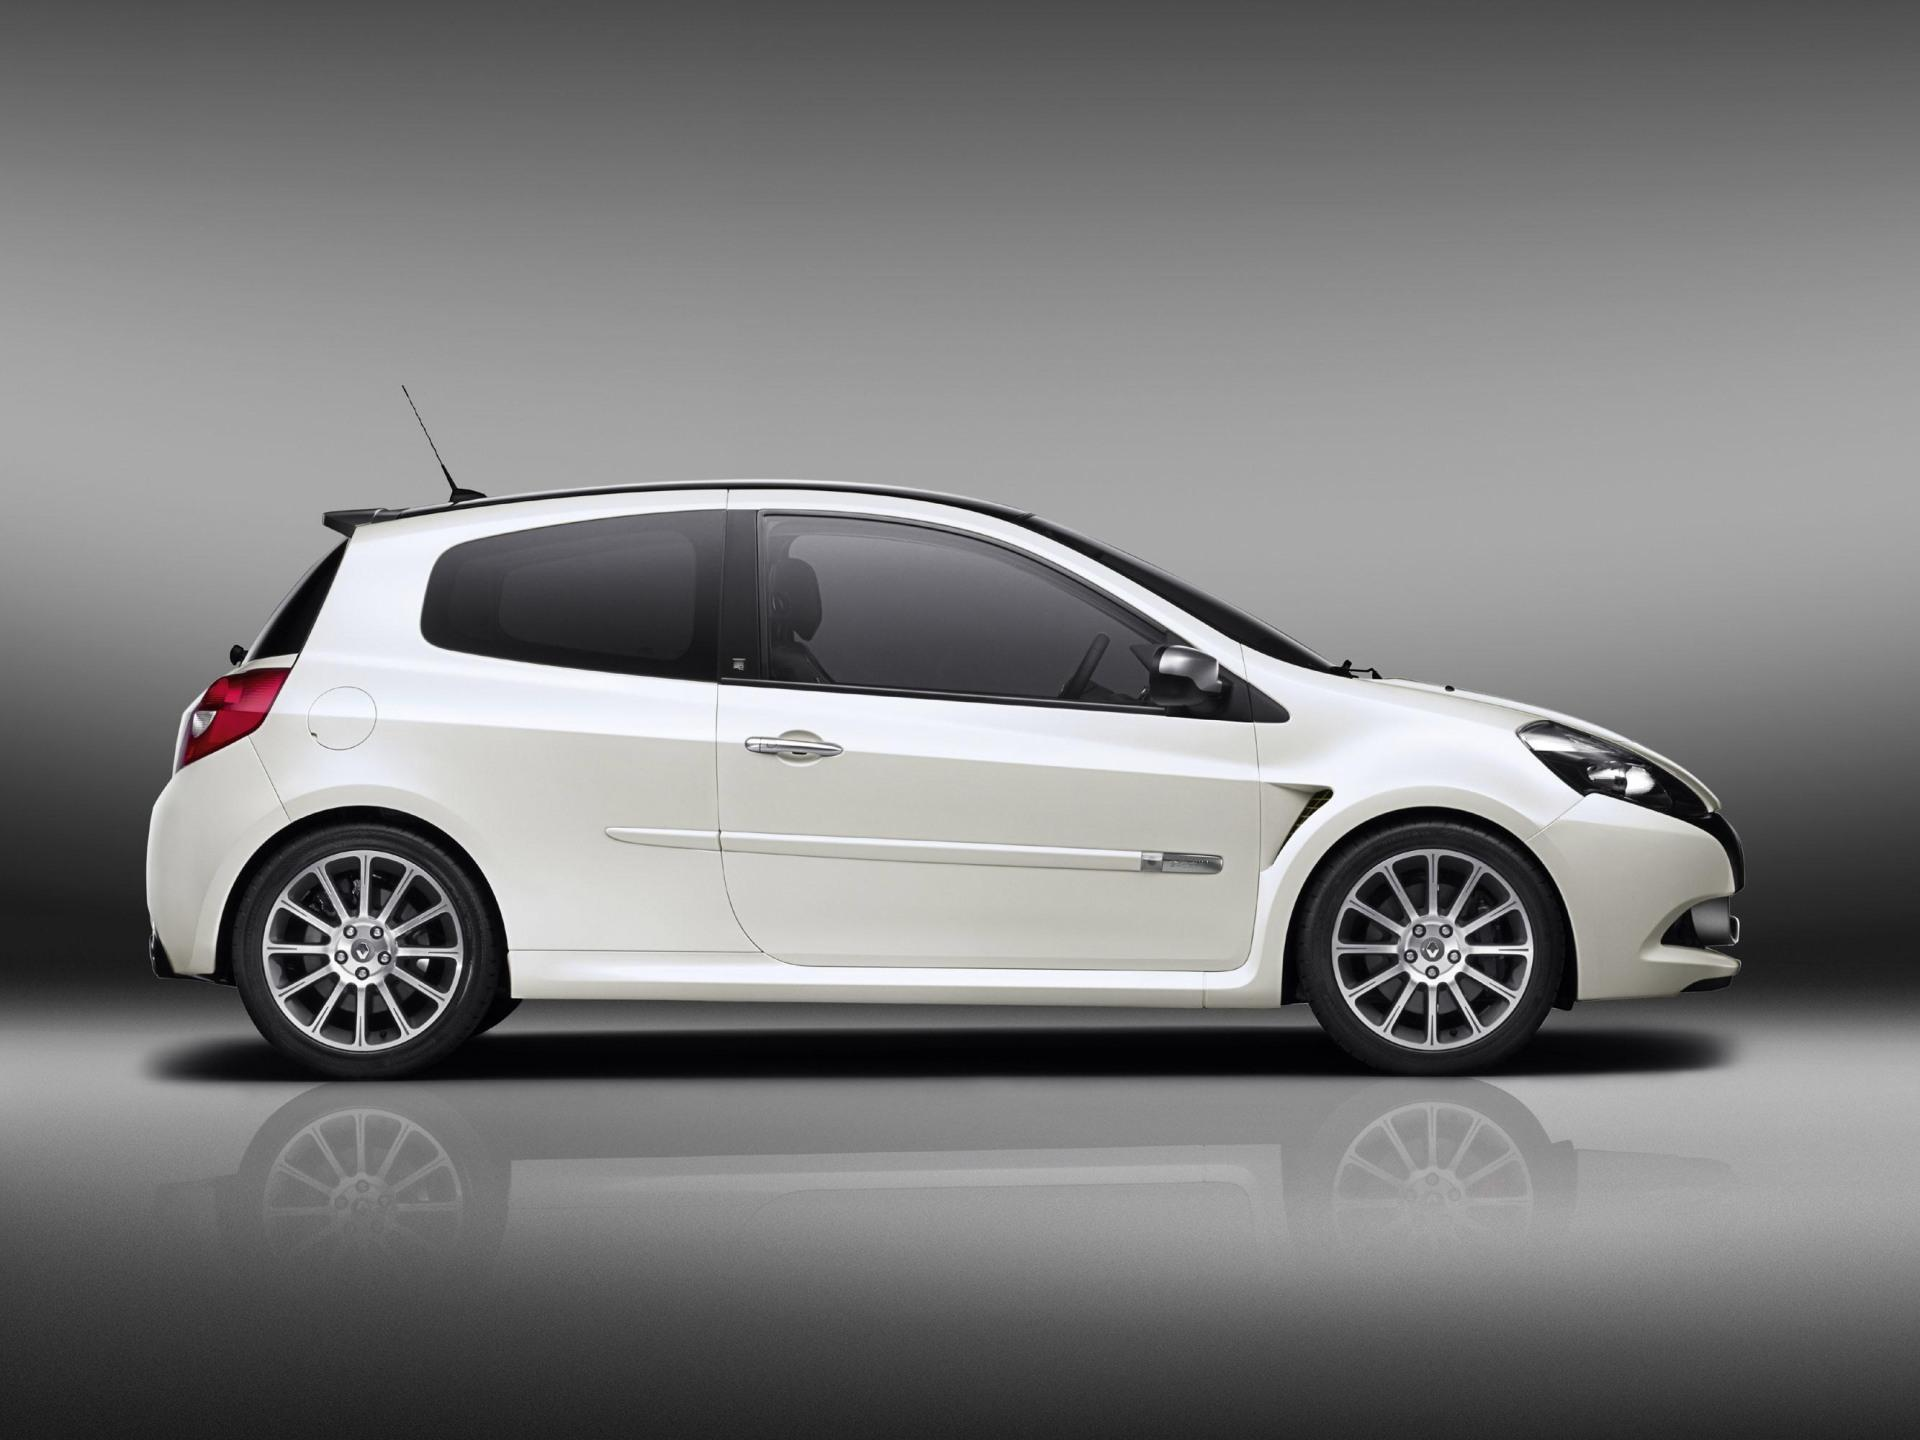 Vintage Muscle Car Wallpaper 2010 Renault Clio 20th Anniversary Edition Conceptcarz Com